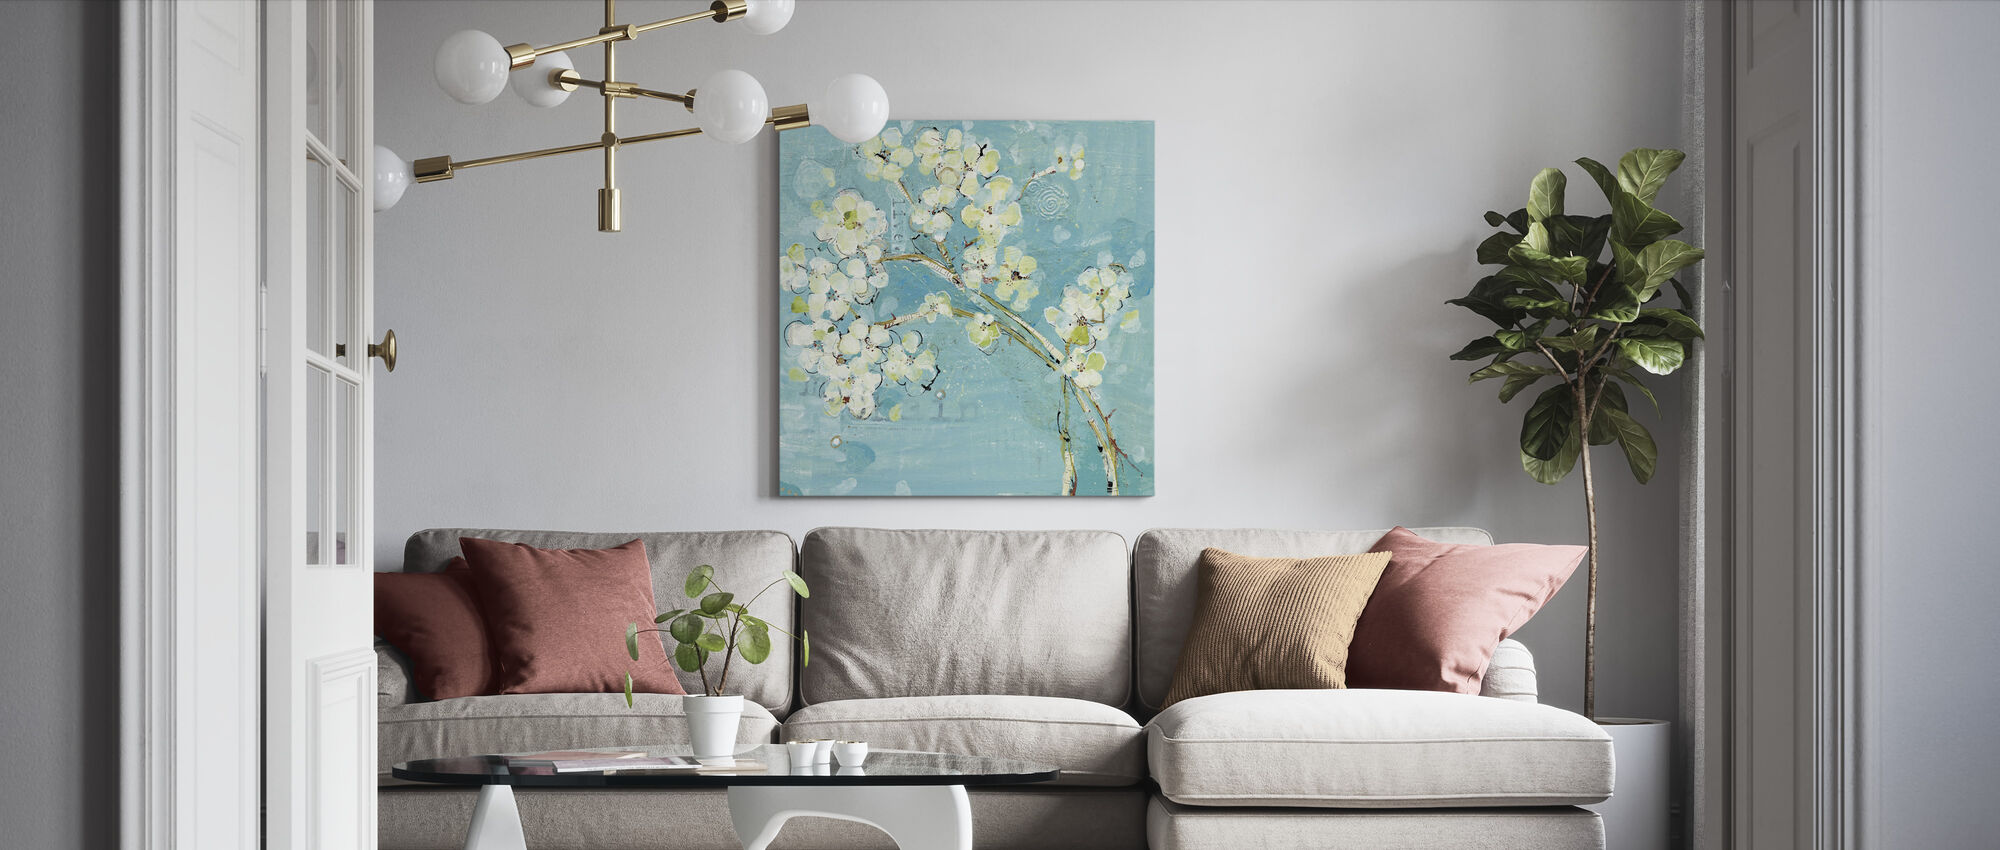 Live Turkoois - Canvas print - Woonkamer